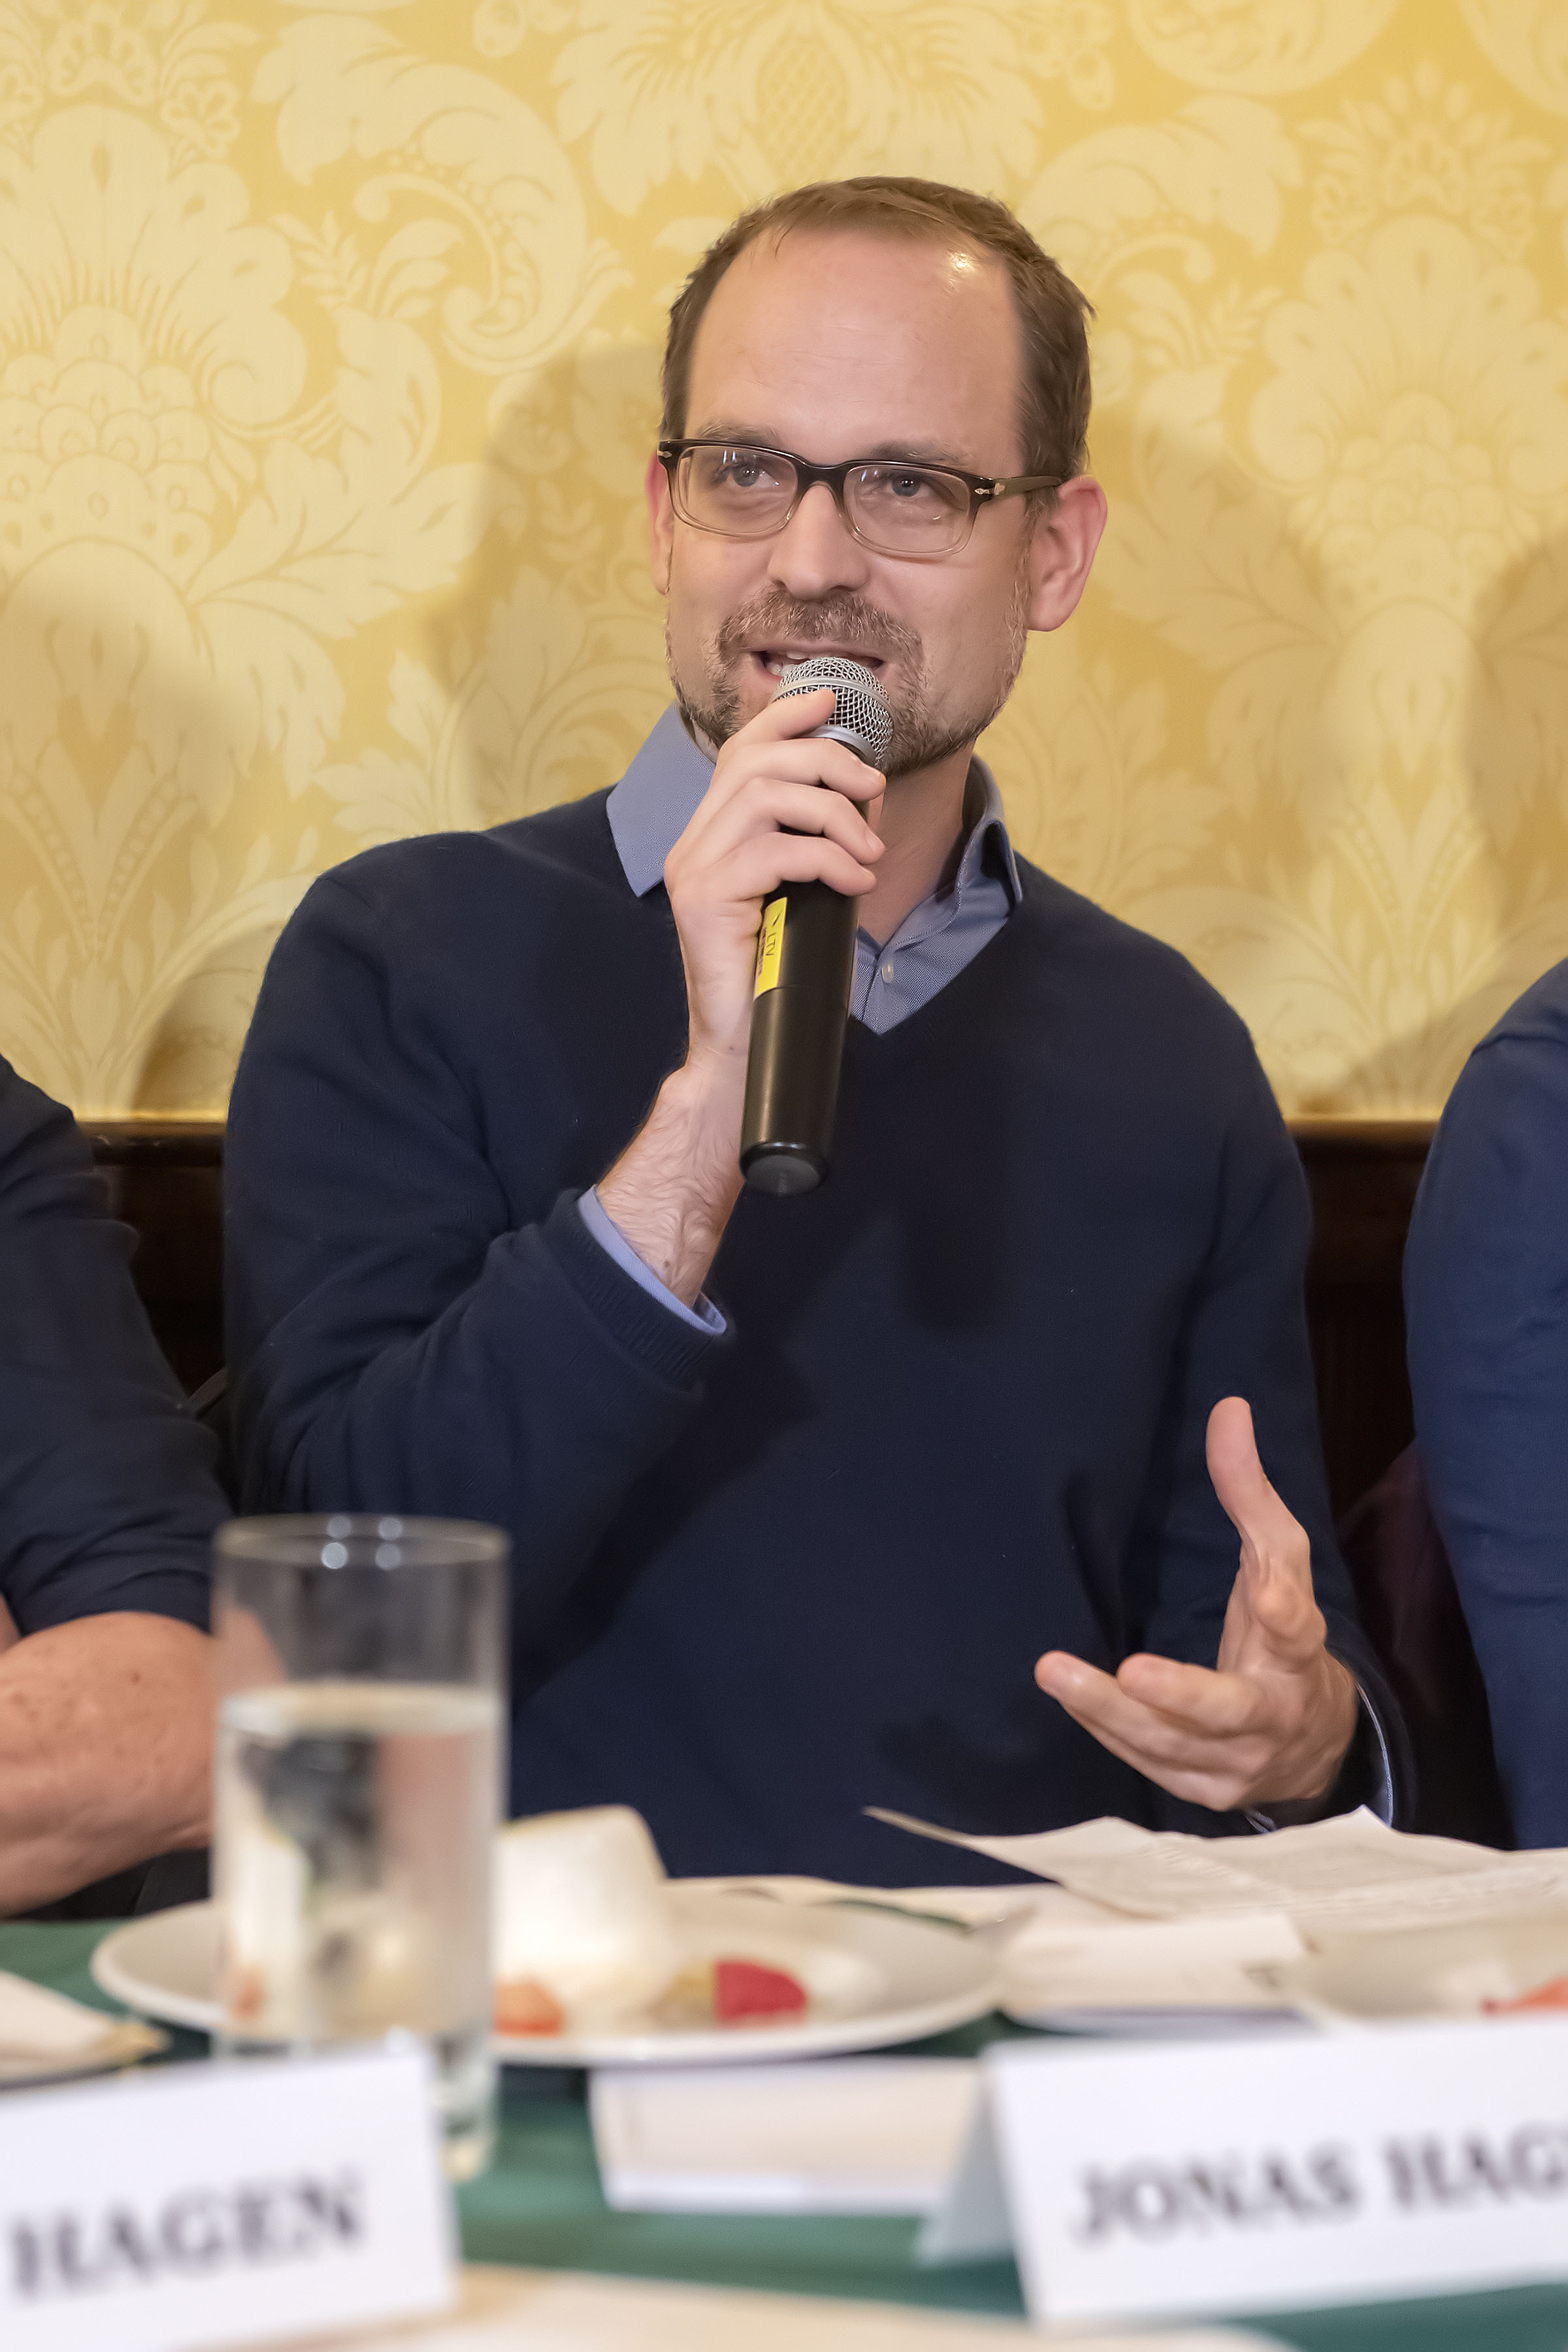 Panelist Jonas Hagen speaks during the Express Sessions - Sag Harbor Public Spaces event at the American Hotel in Sag Harbor on Friday.    MICHAEL HELLER